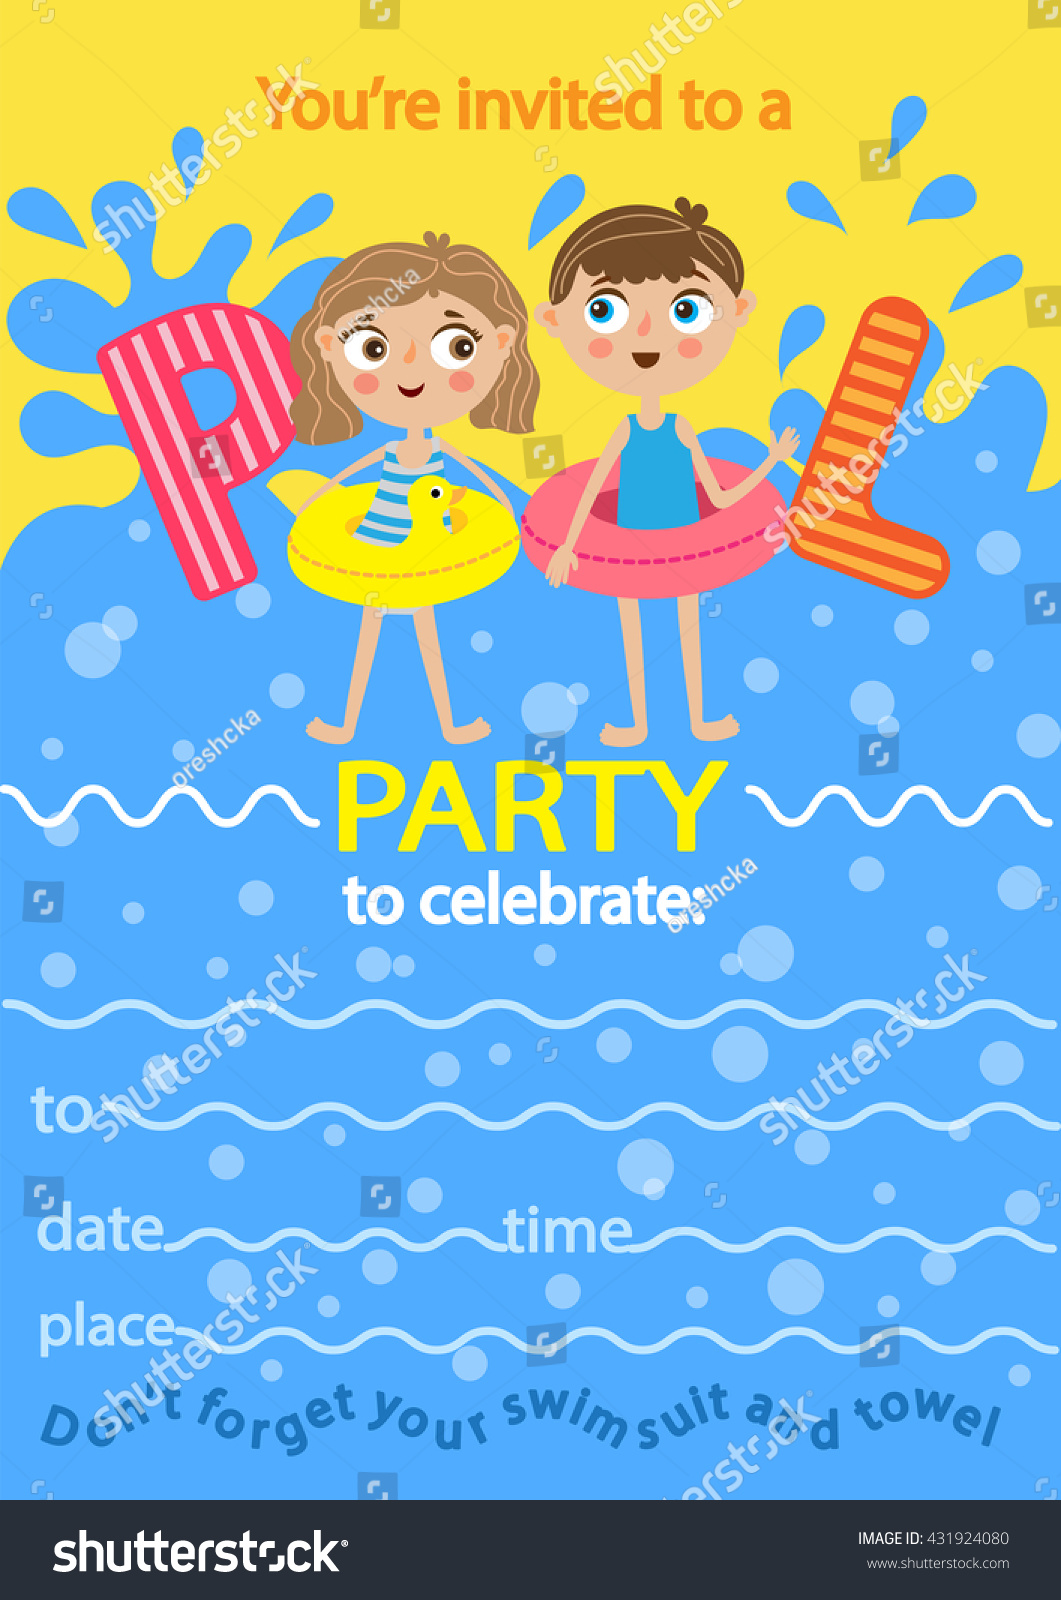 Pool Party Invitation Template Card Kids Stock Vector 431924080 ...